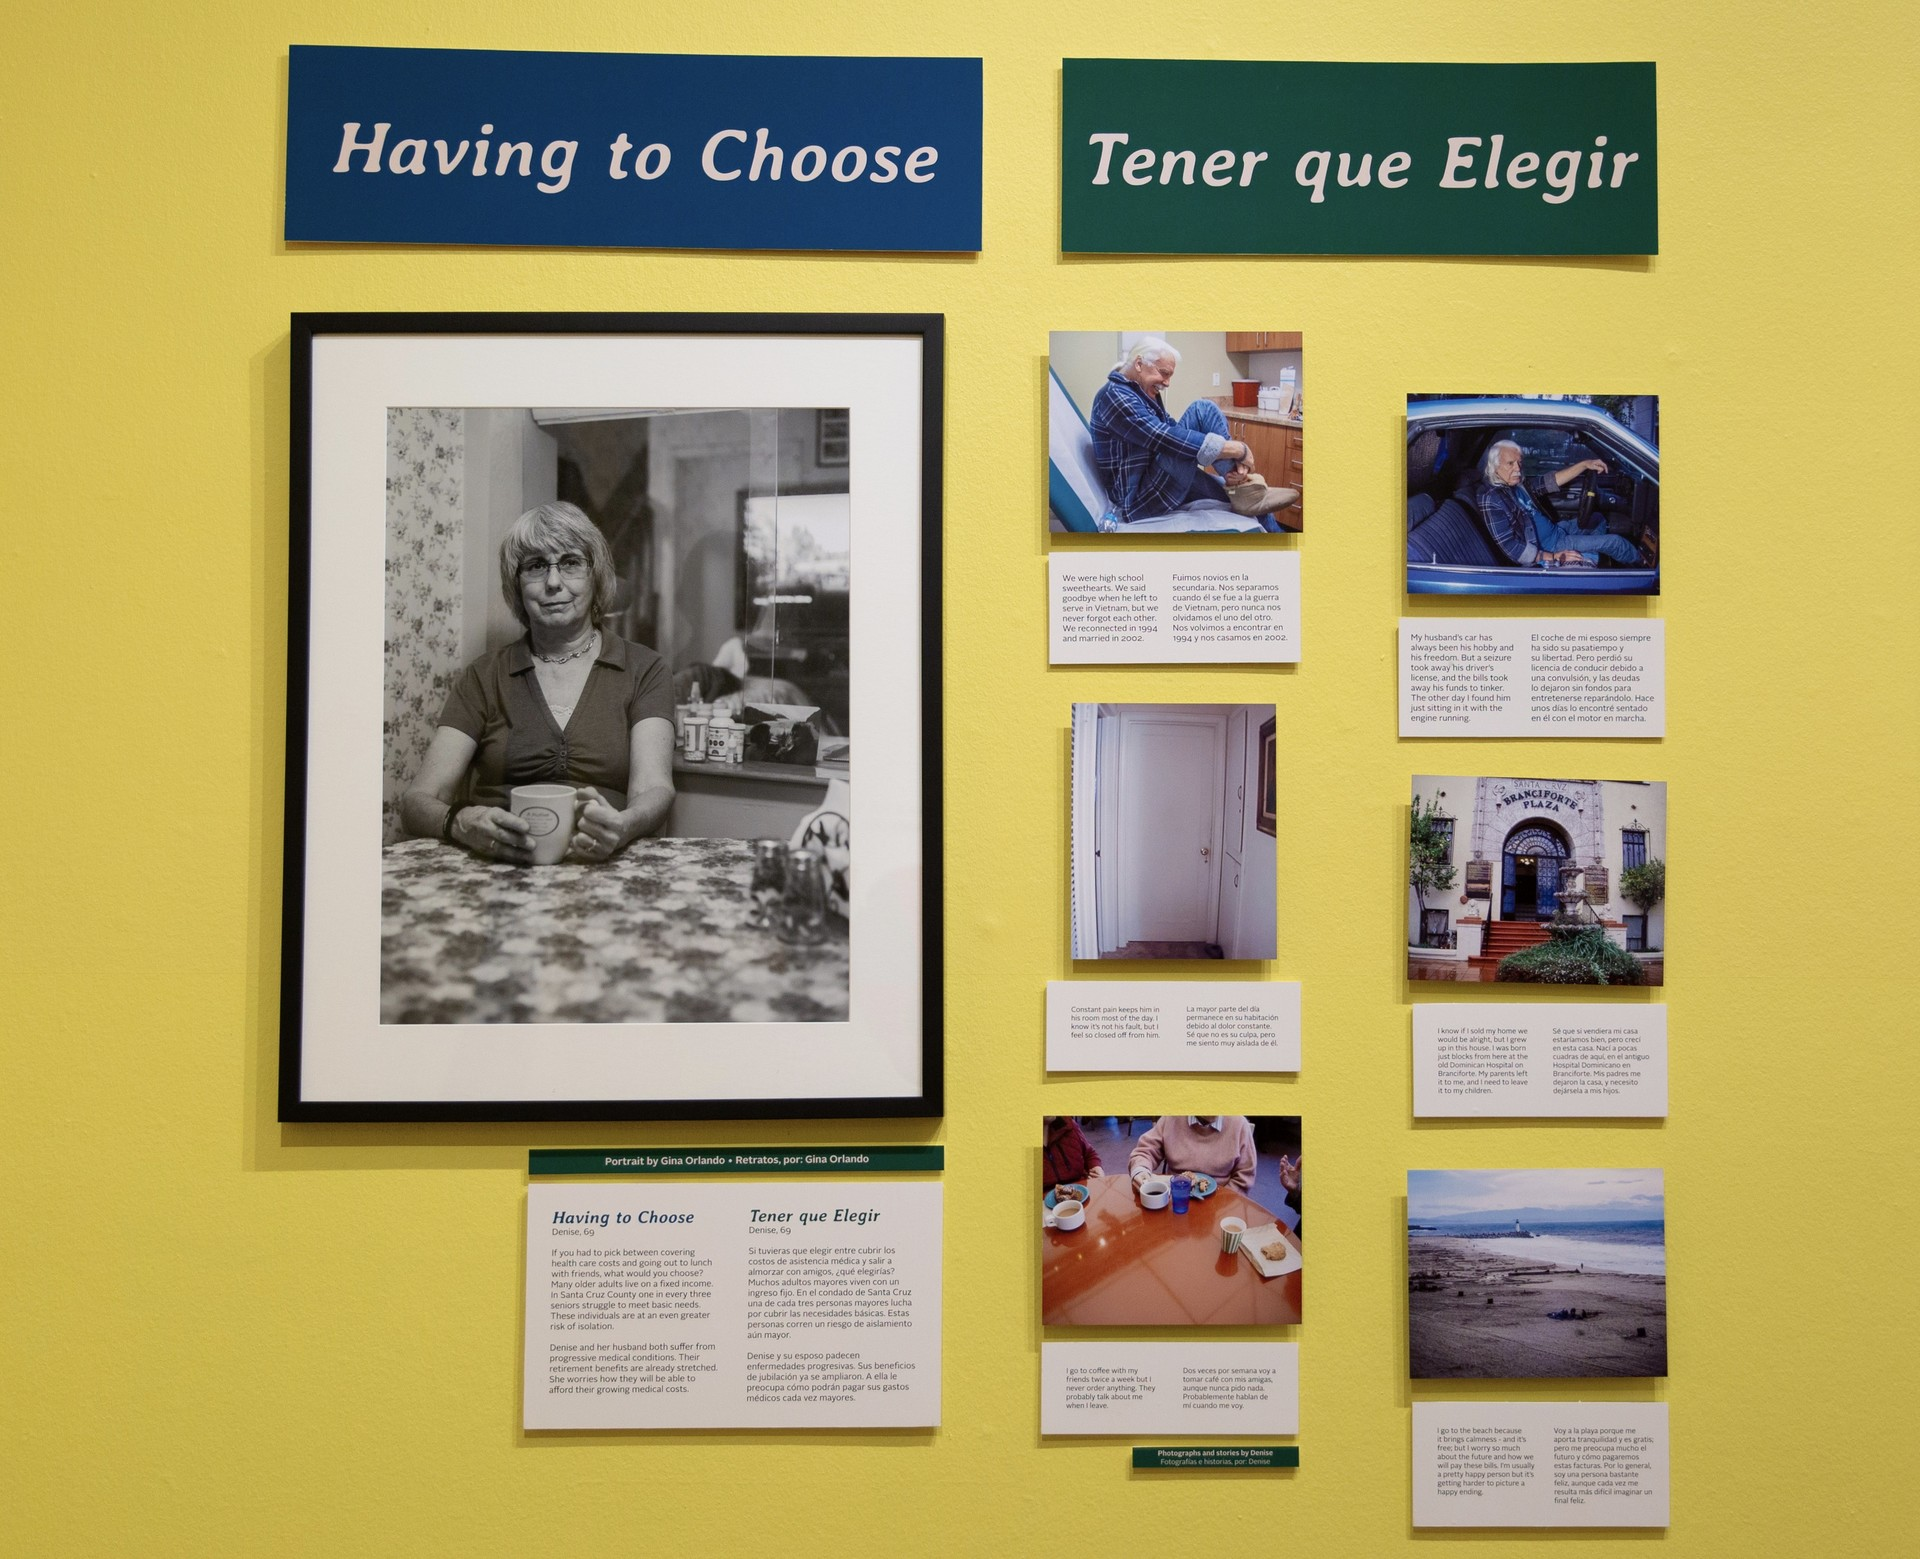 """Having to Choose/Tener que Elegir"" tells the story of 69 year-old Denise a senior profiled by Santa Cruz artist Gina Orlando for the exhibit We're Still Here at the Santa Cruz Museum of Art and History."